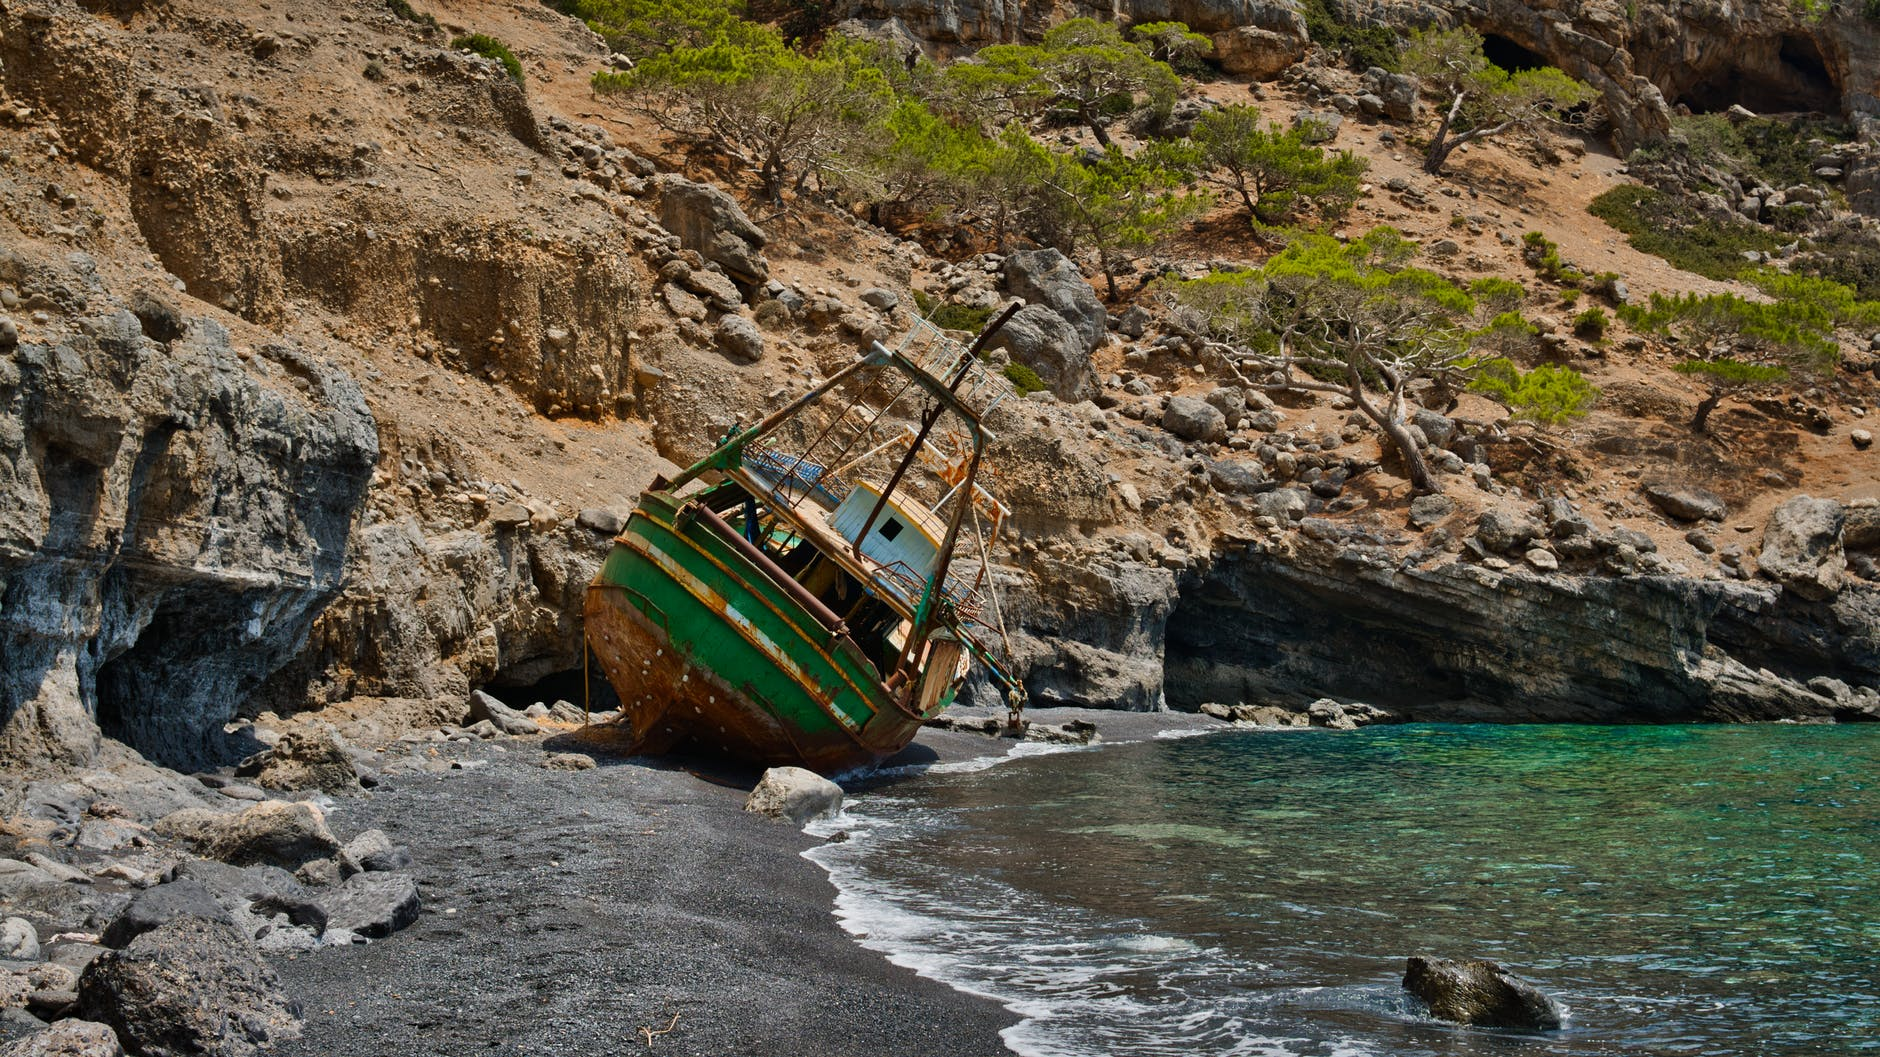 wreck fishing boat at the seashore